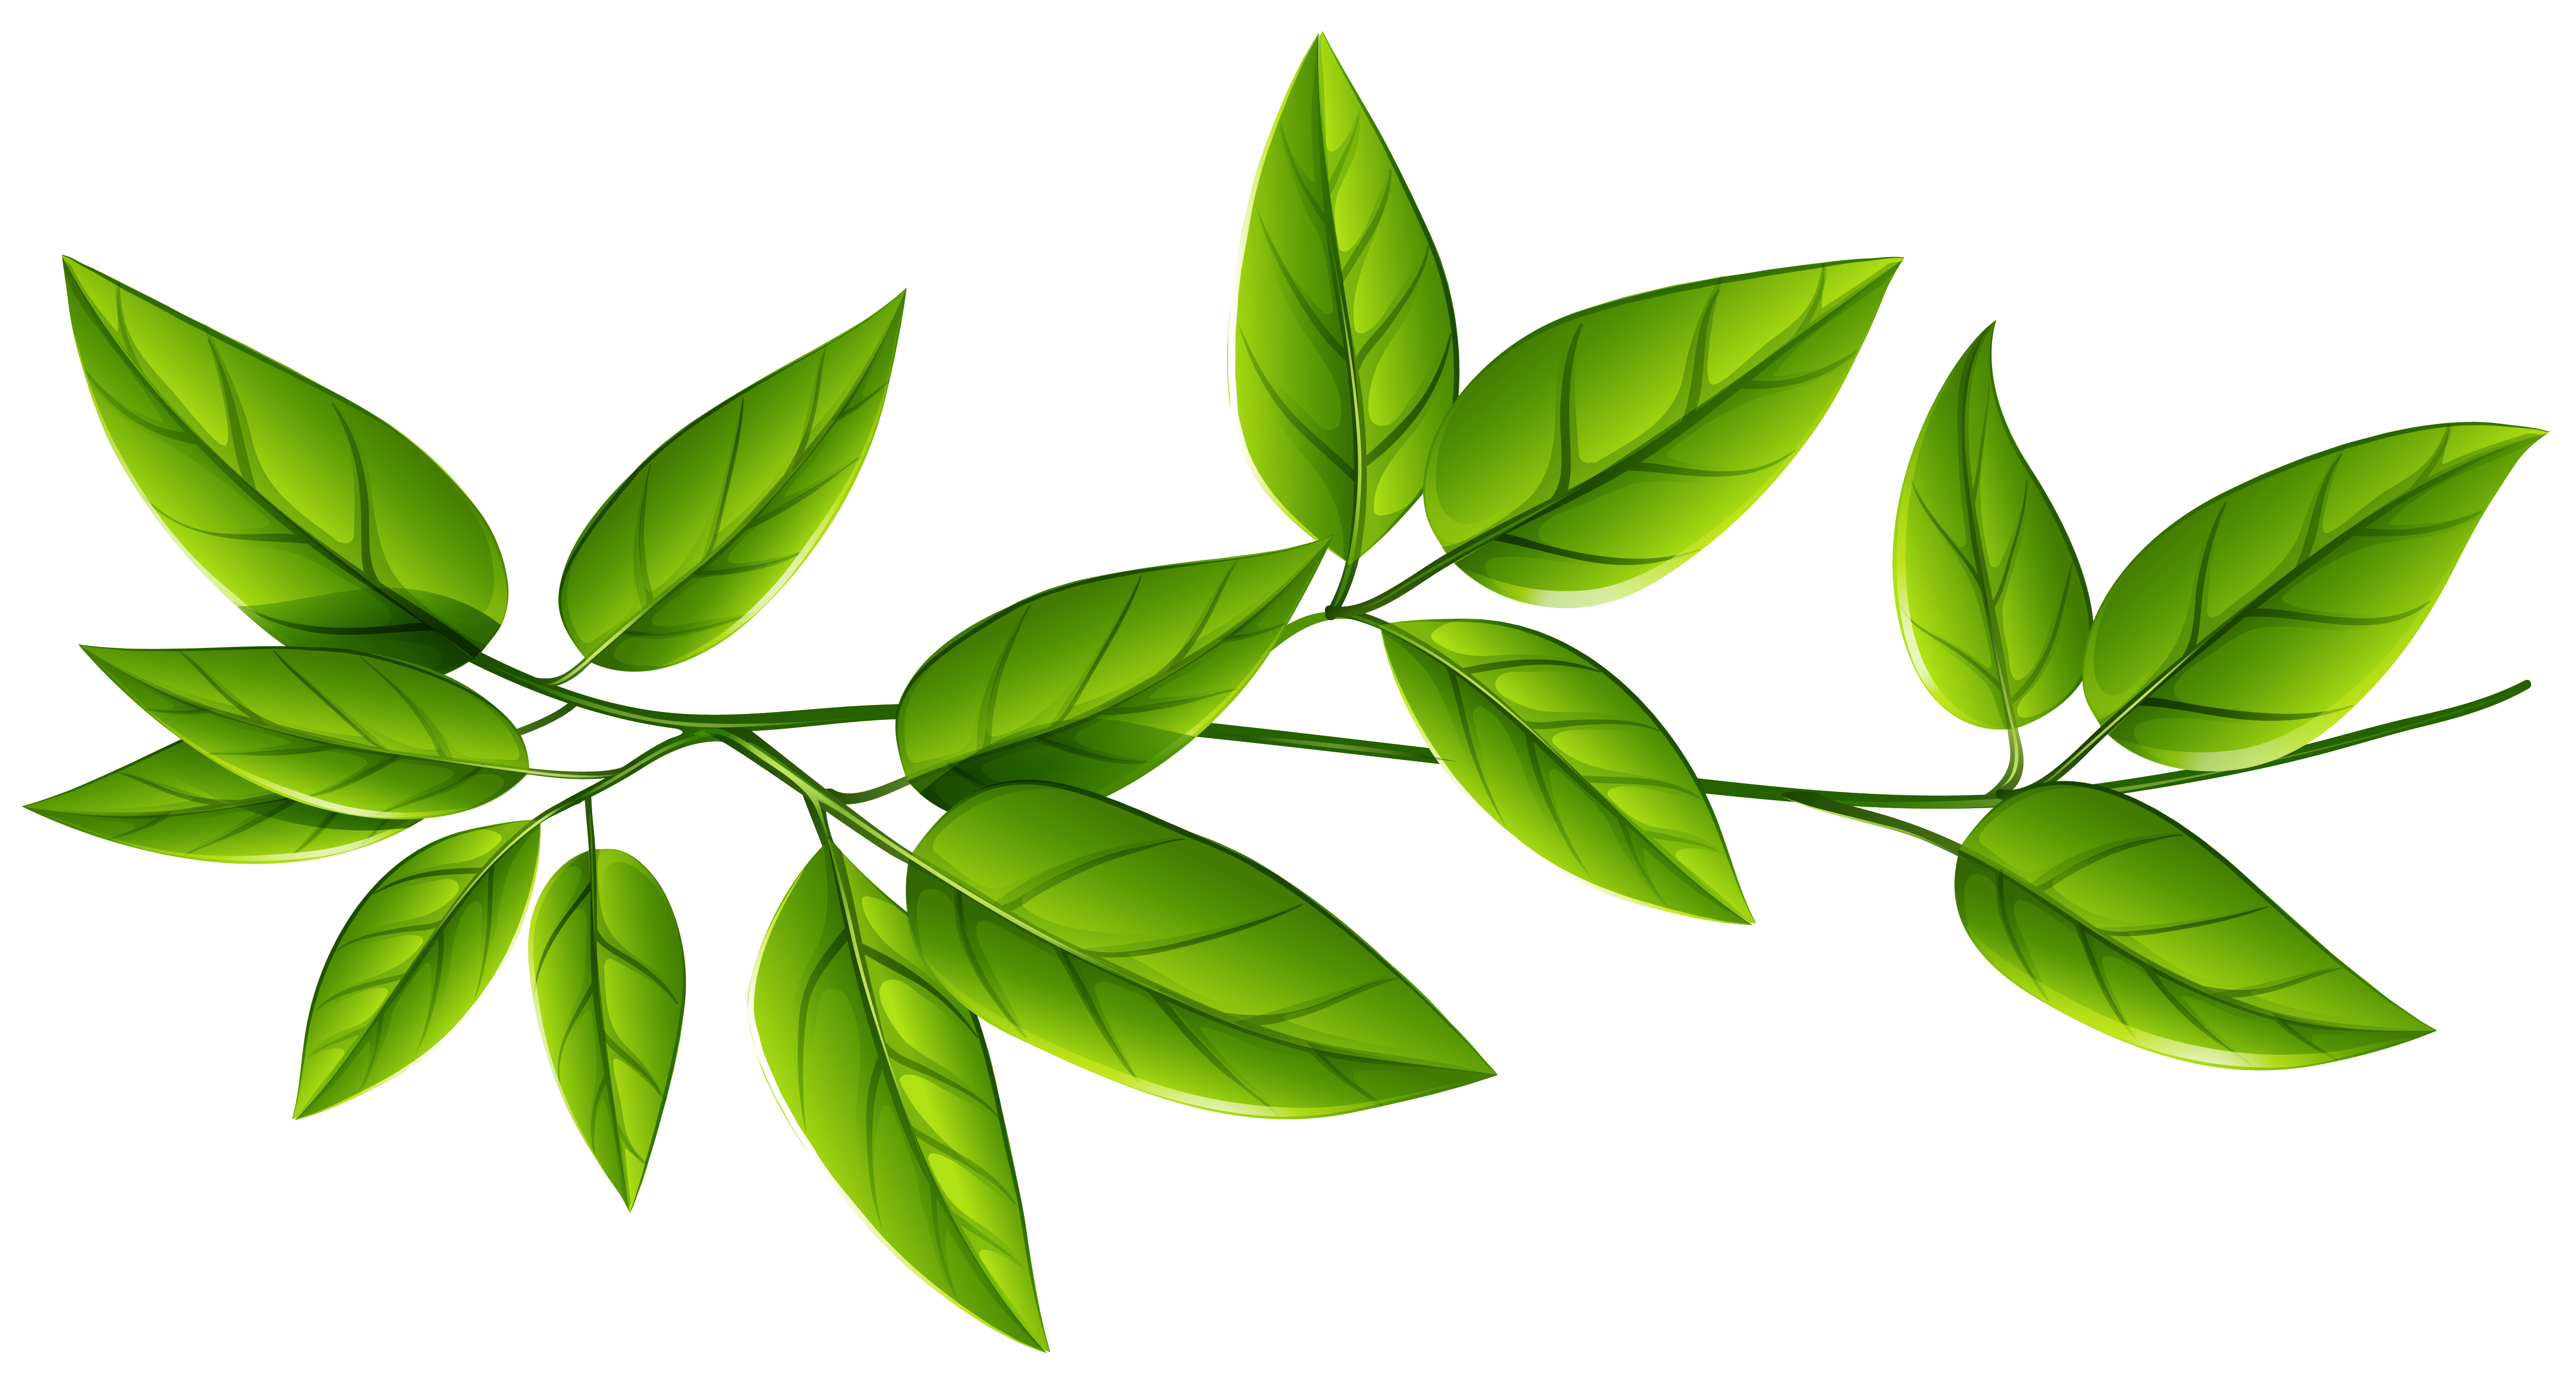 Png Leaf - Green Leaves PNG Image | Gallery Yopriceville - High-Quality ...